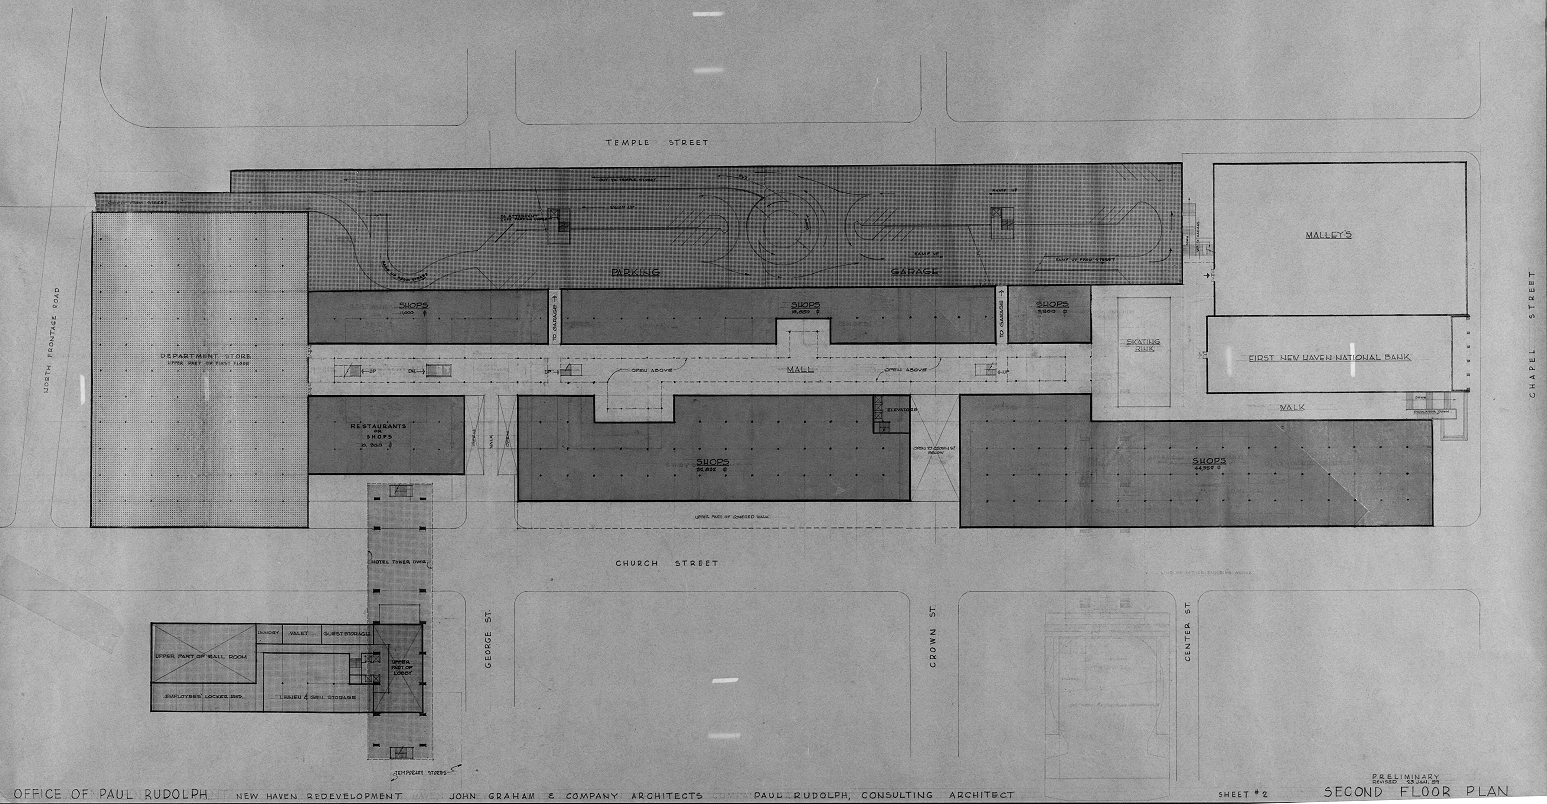 Church Street Redevelopment, New Haven, Connecticut. Second Floor Plan.